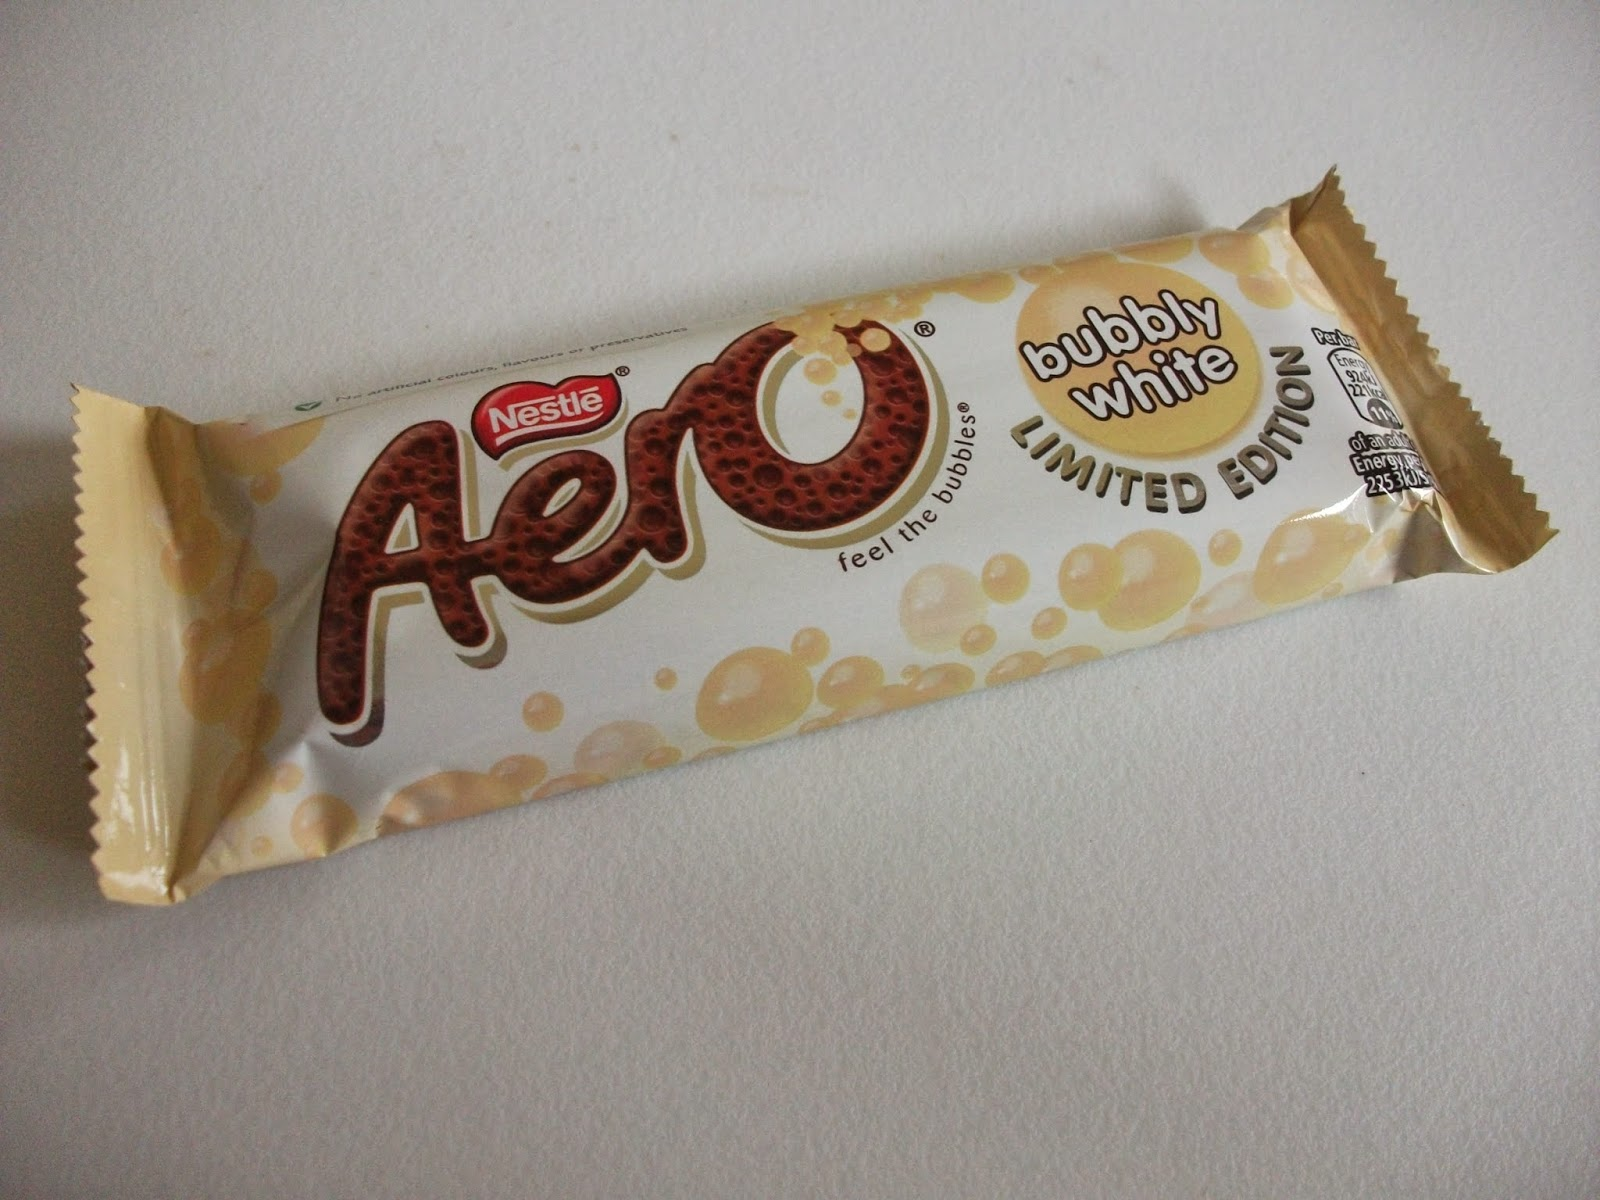 nestle aero bubbly white chocolate